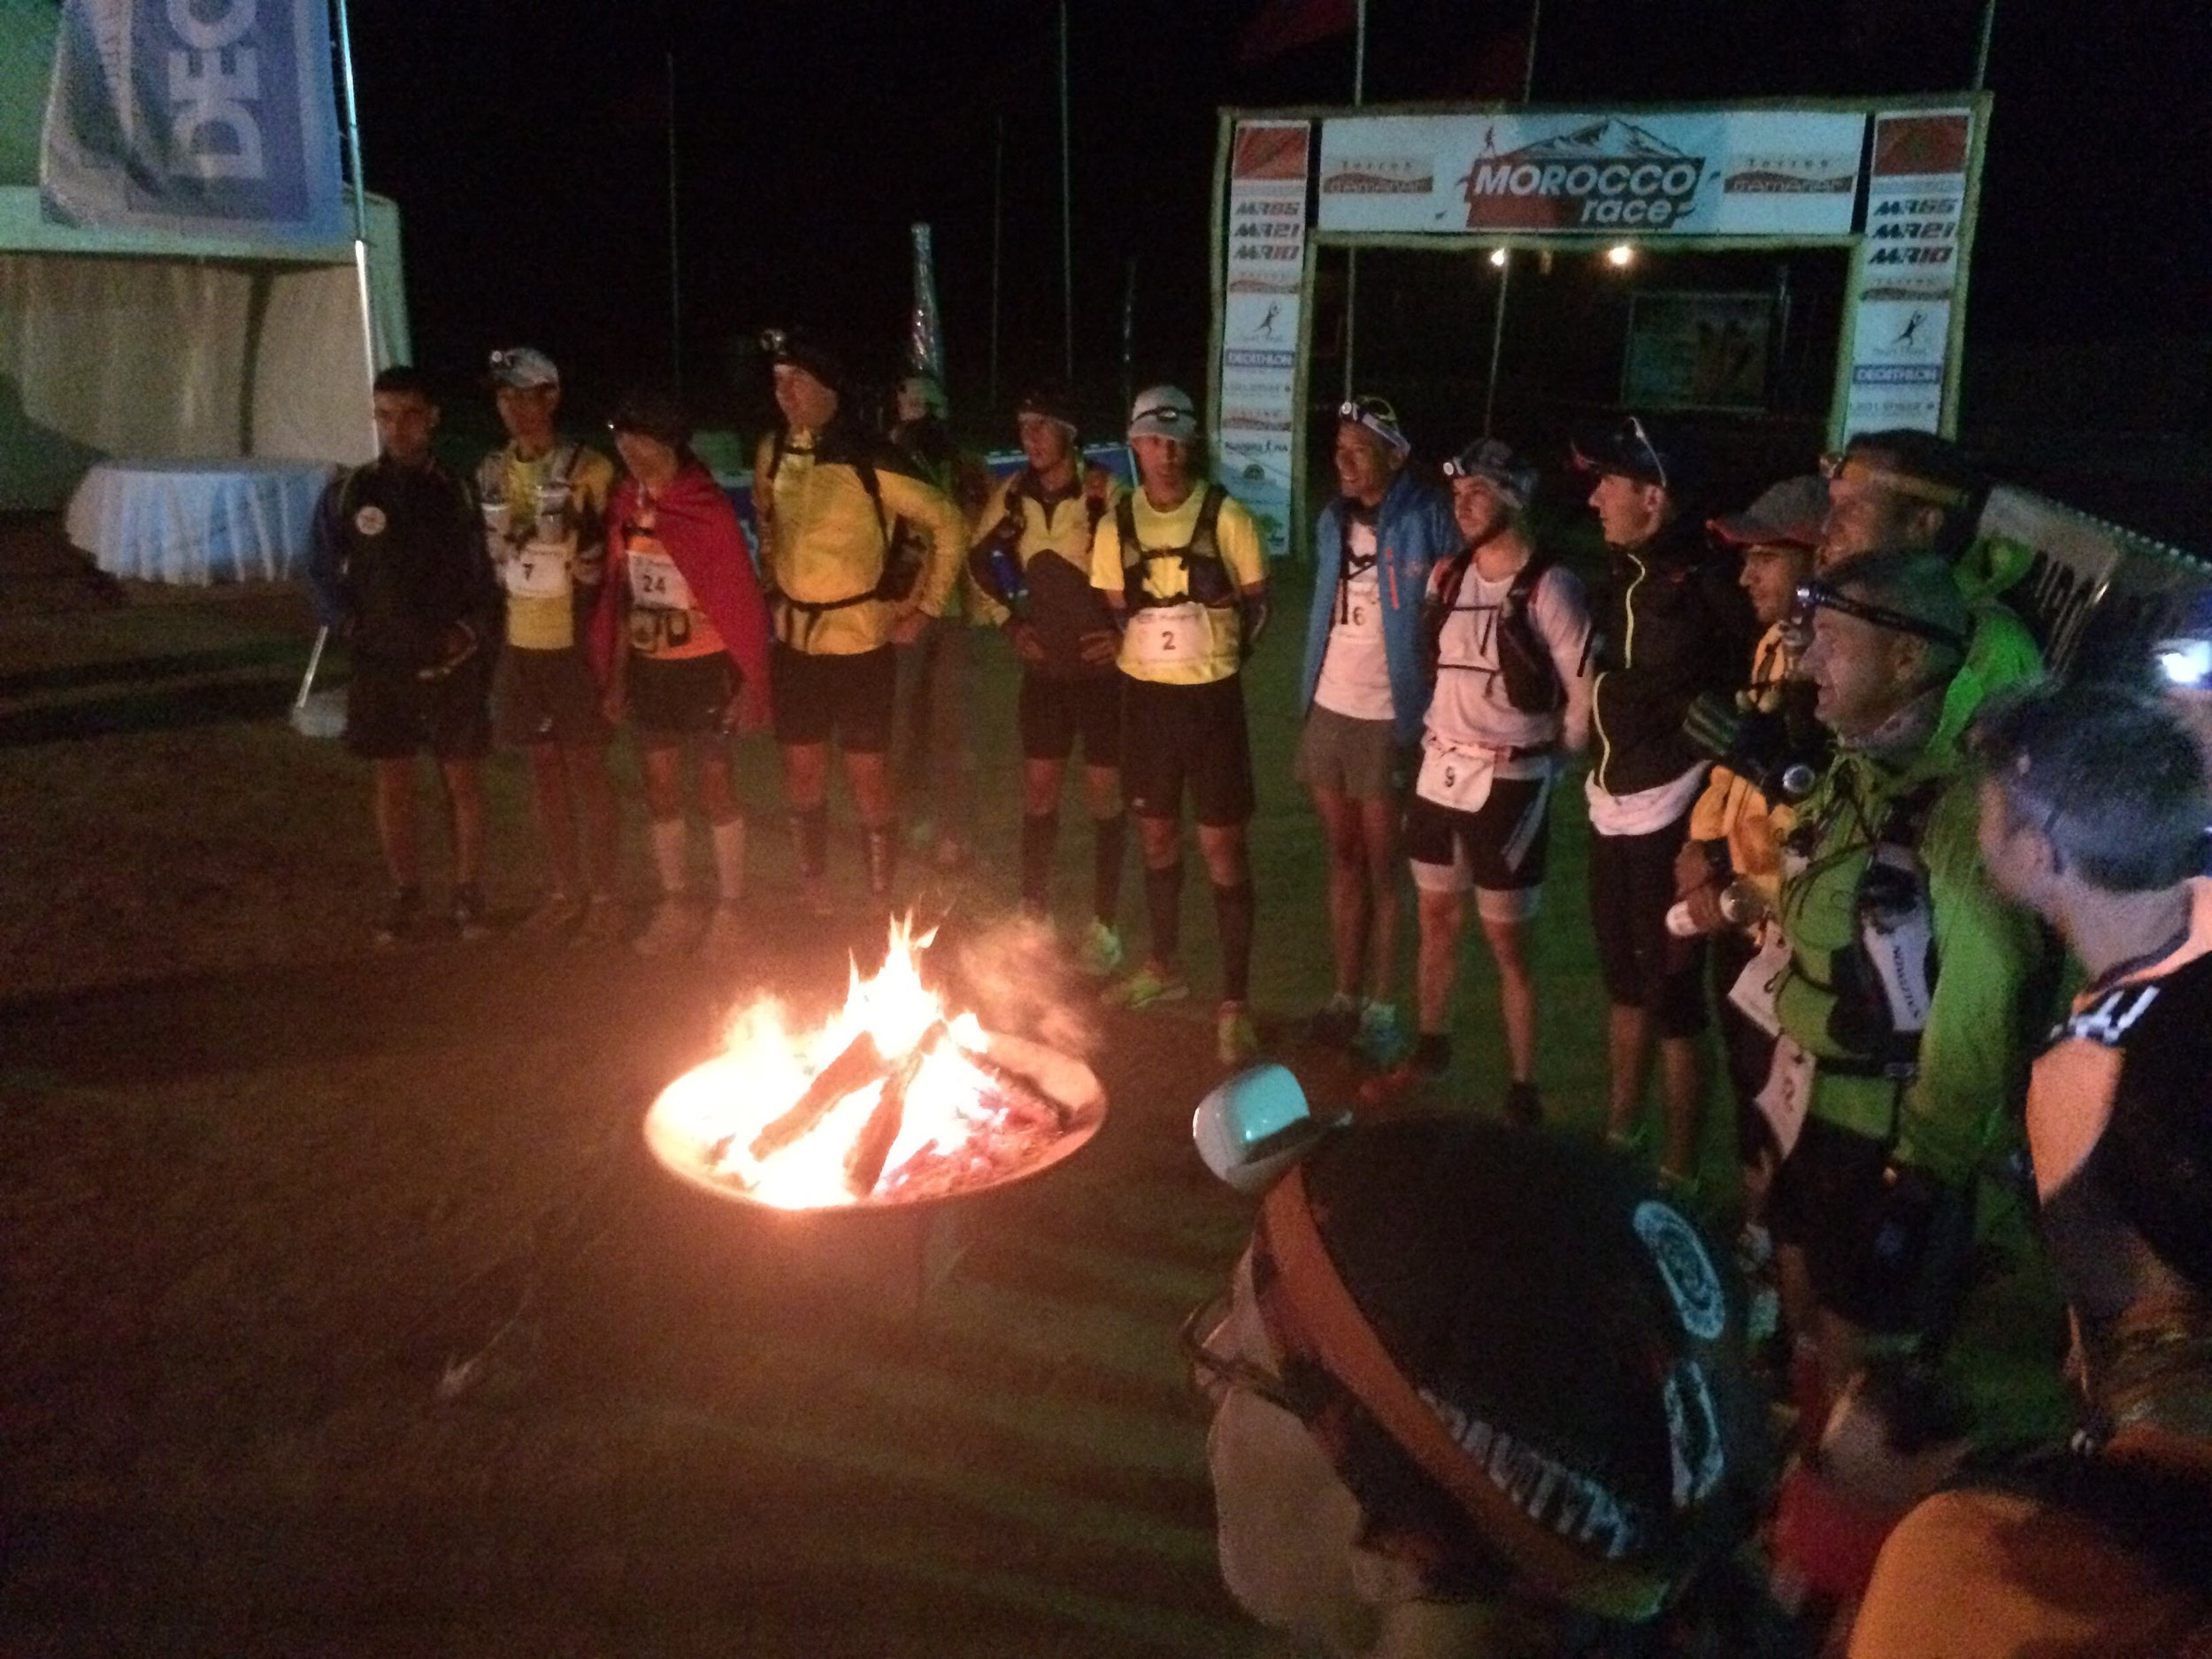 The fire to warm up at was a nice touch for the 5am start